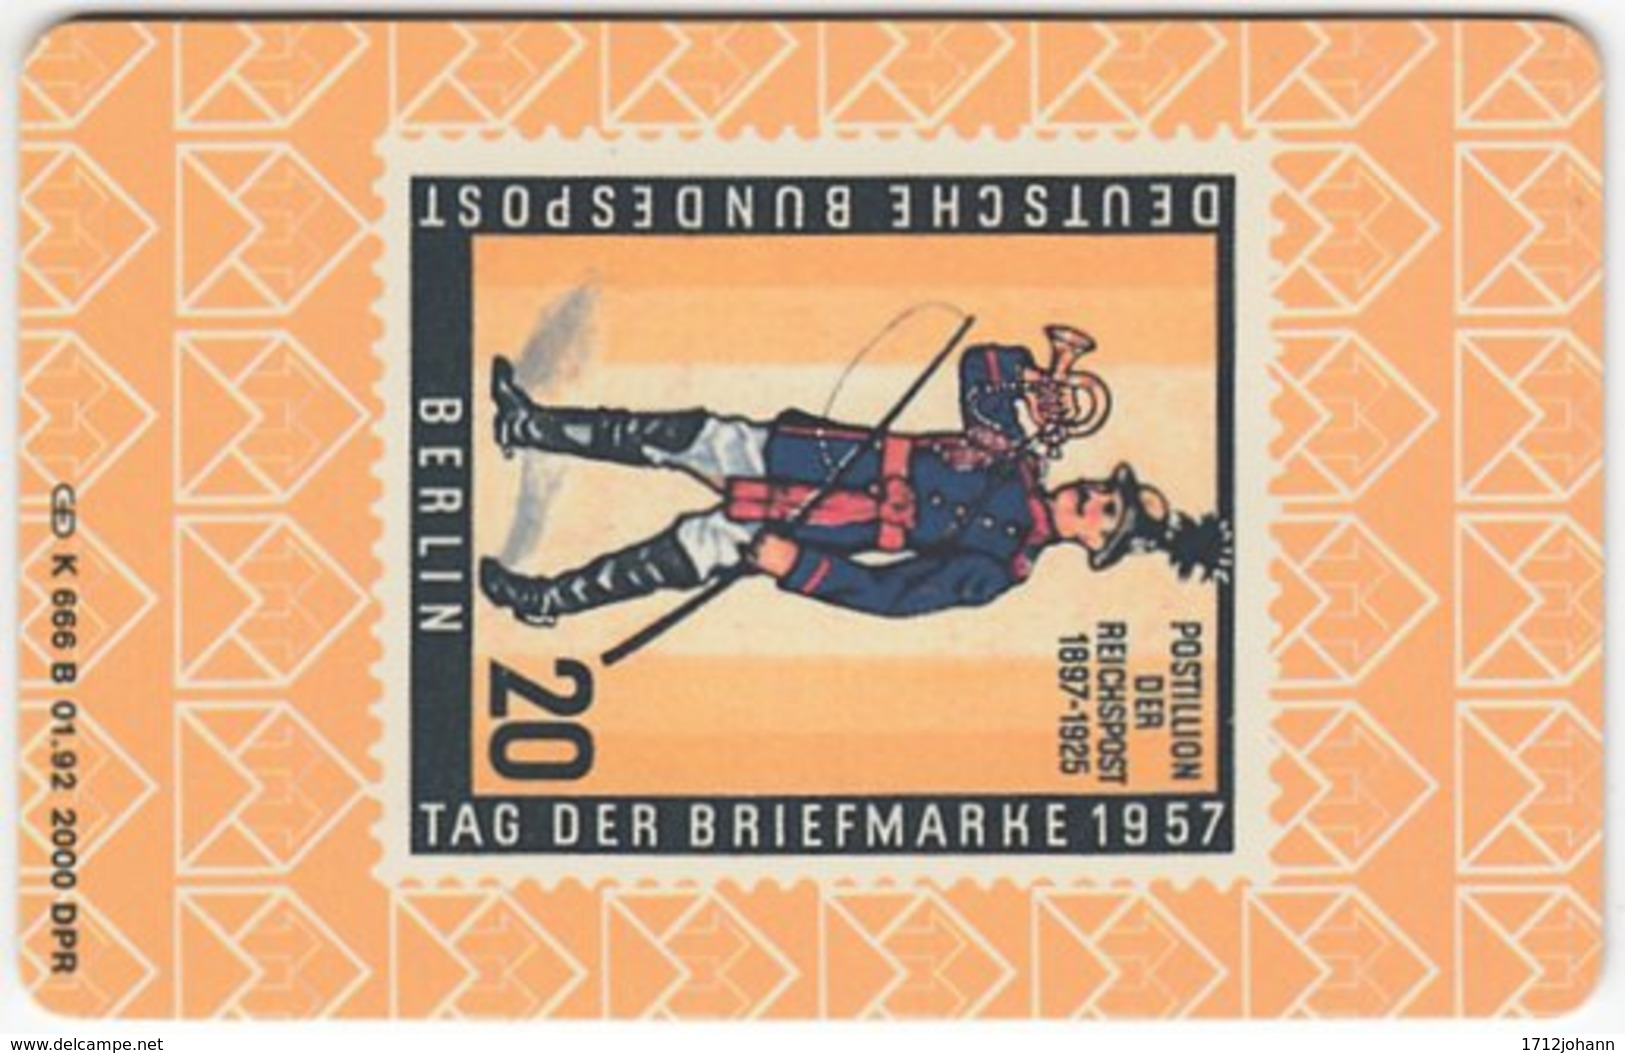 GERMANY K-Serie A-600 - 666B 01.92 - Collection, Stamp - MINT - Deutschland